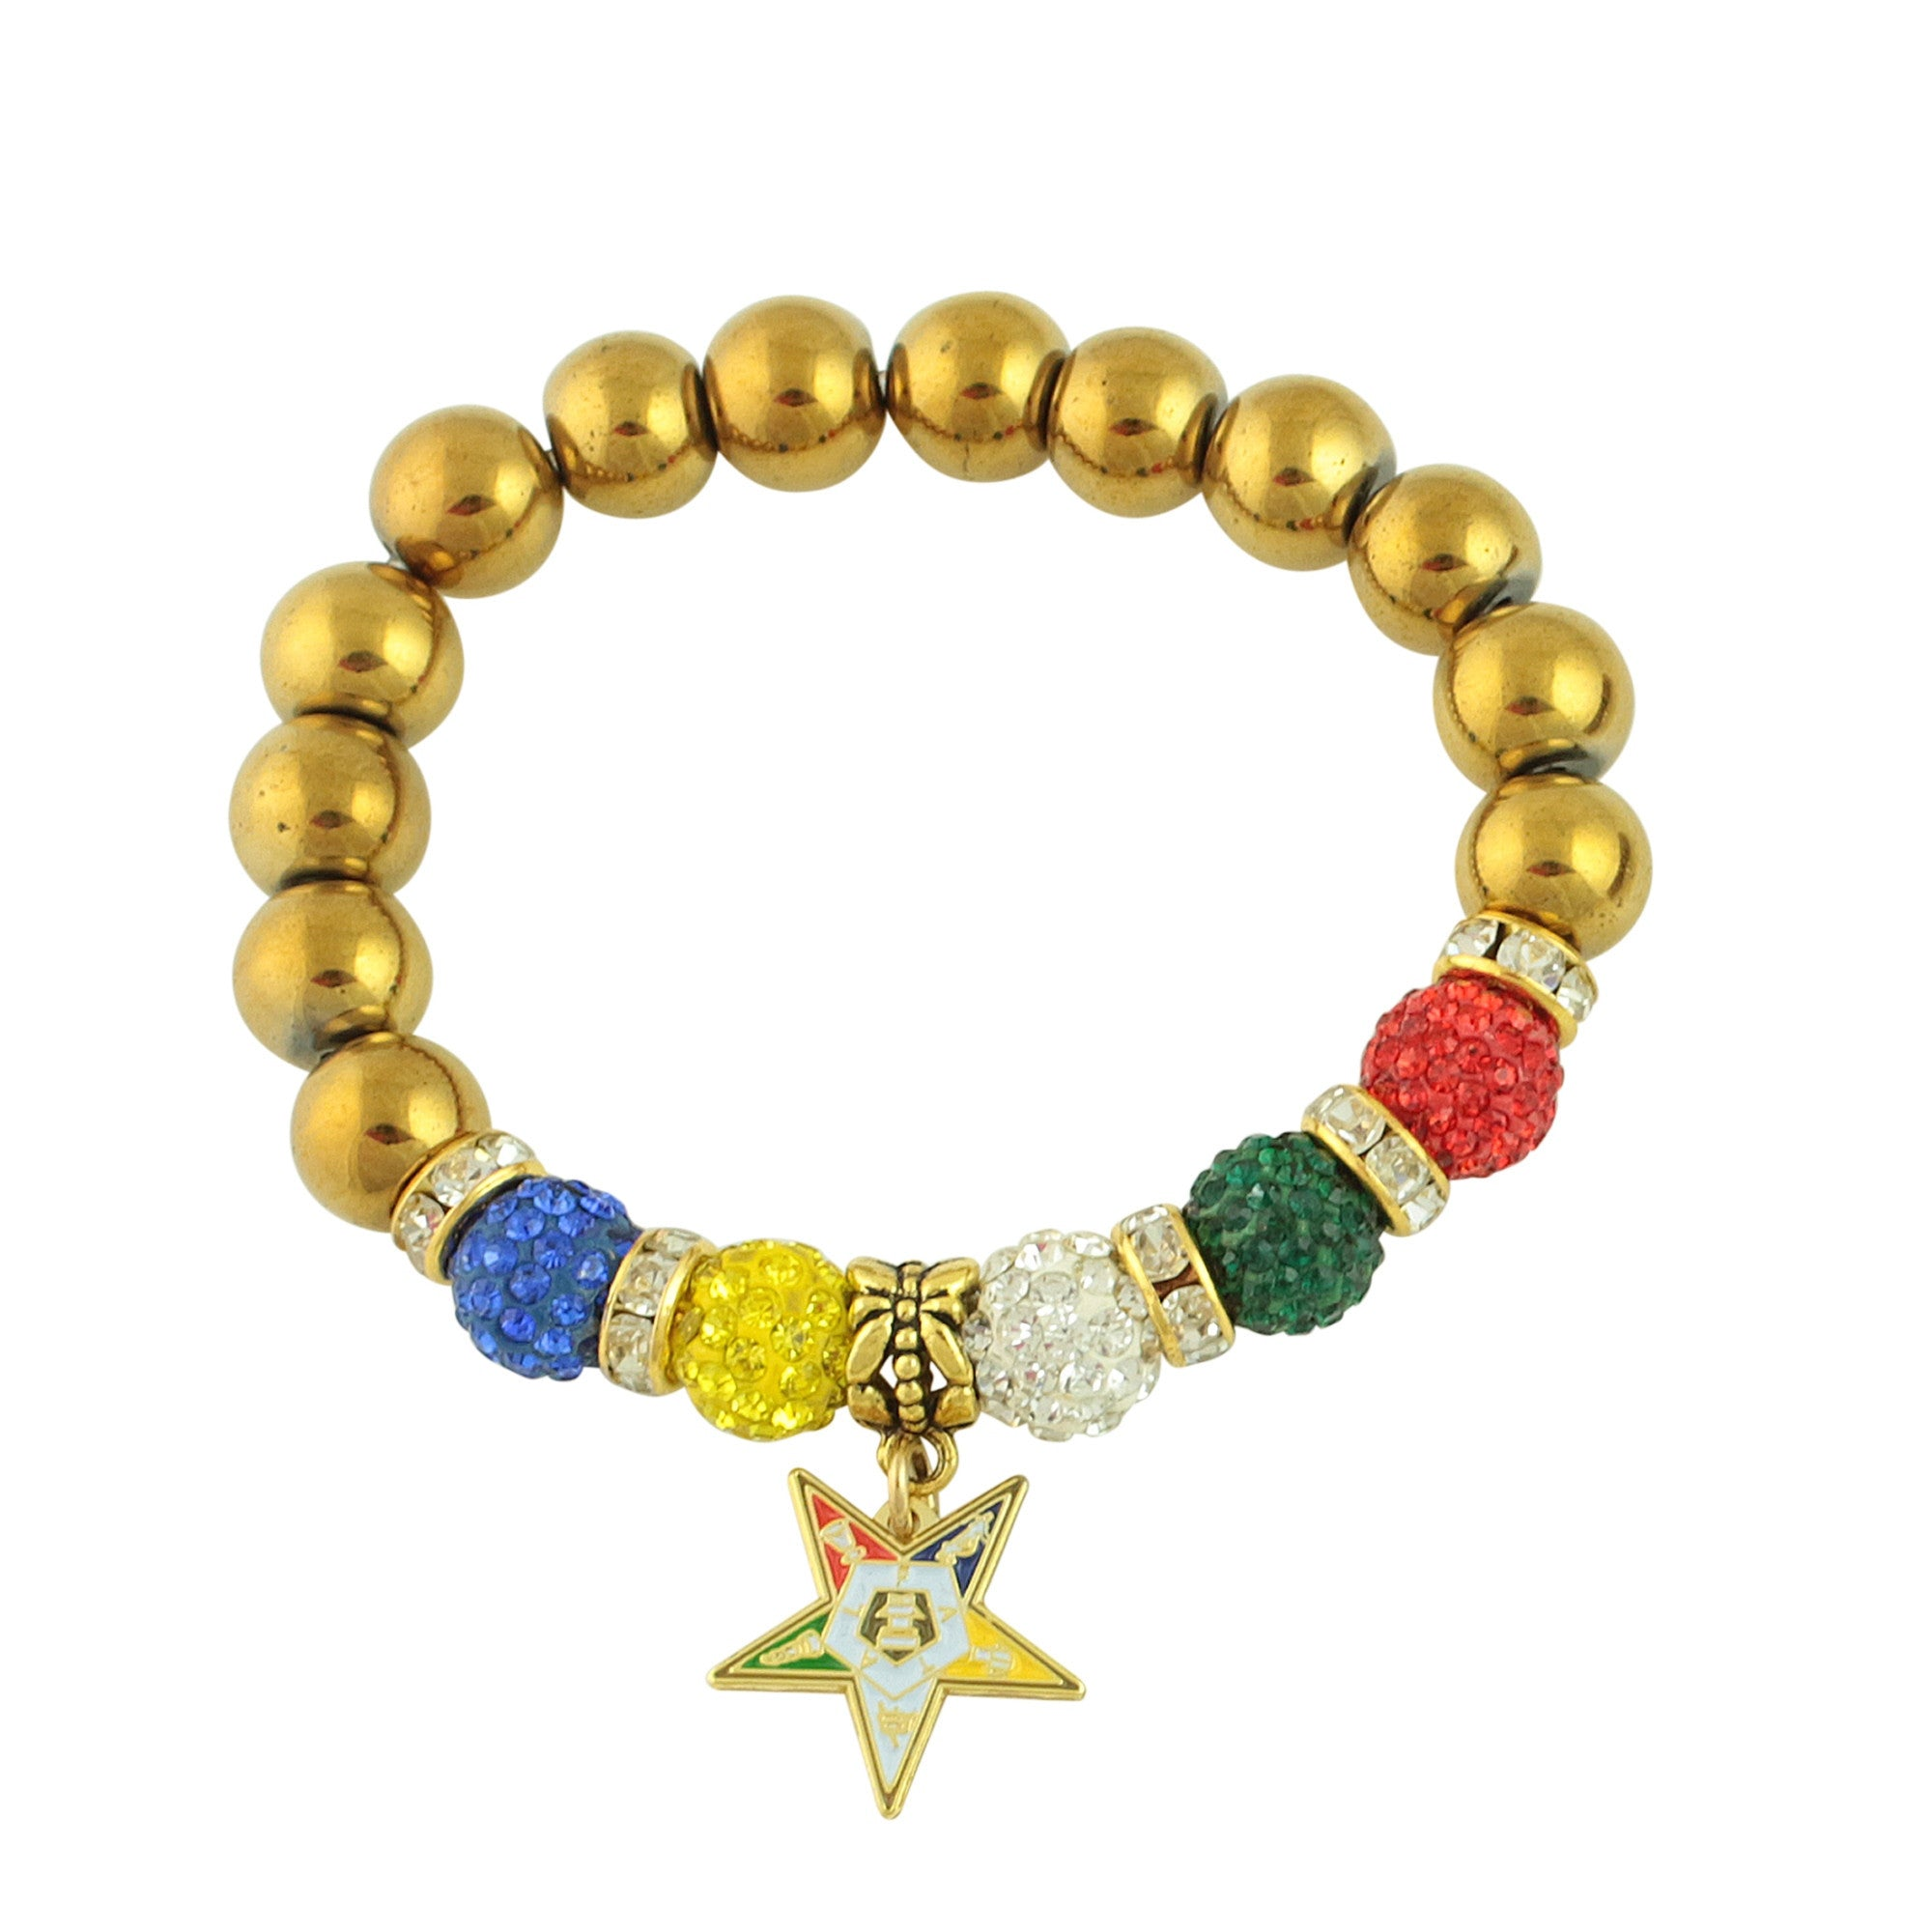 Order of the Eastern Star Natural Gemstone Charm Bracelet